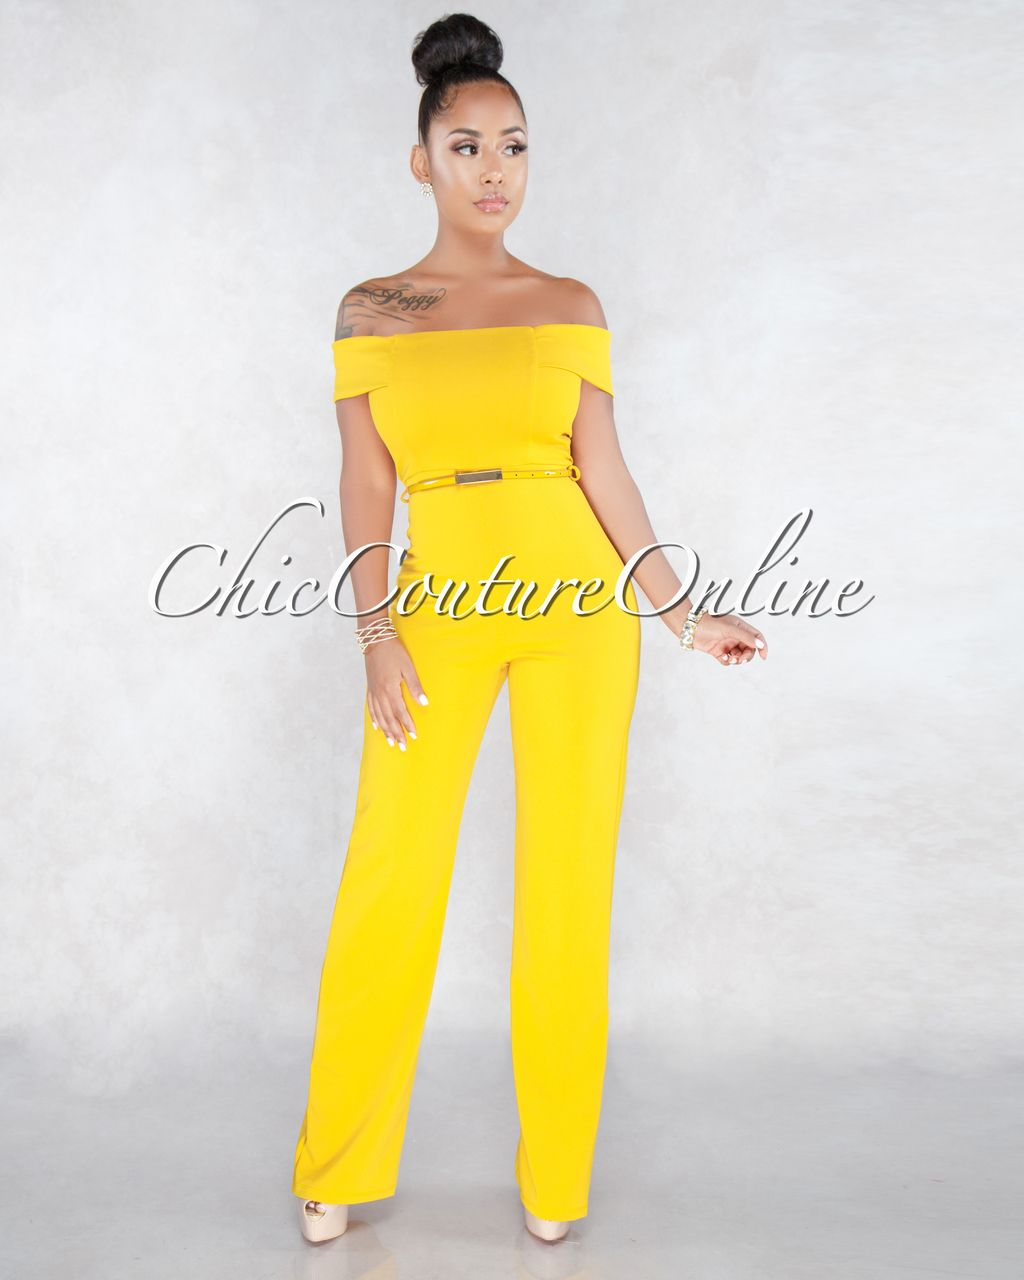 6833bc9dd968a Chic Couture Online - Janna Mustard Yellow Off The Shoulder Jumpsuit ...